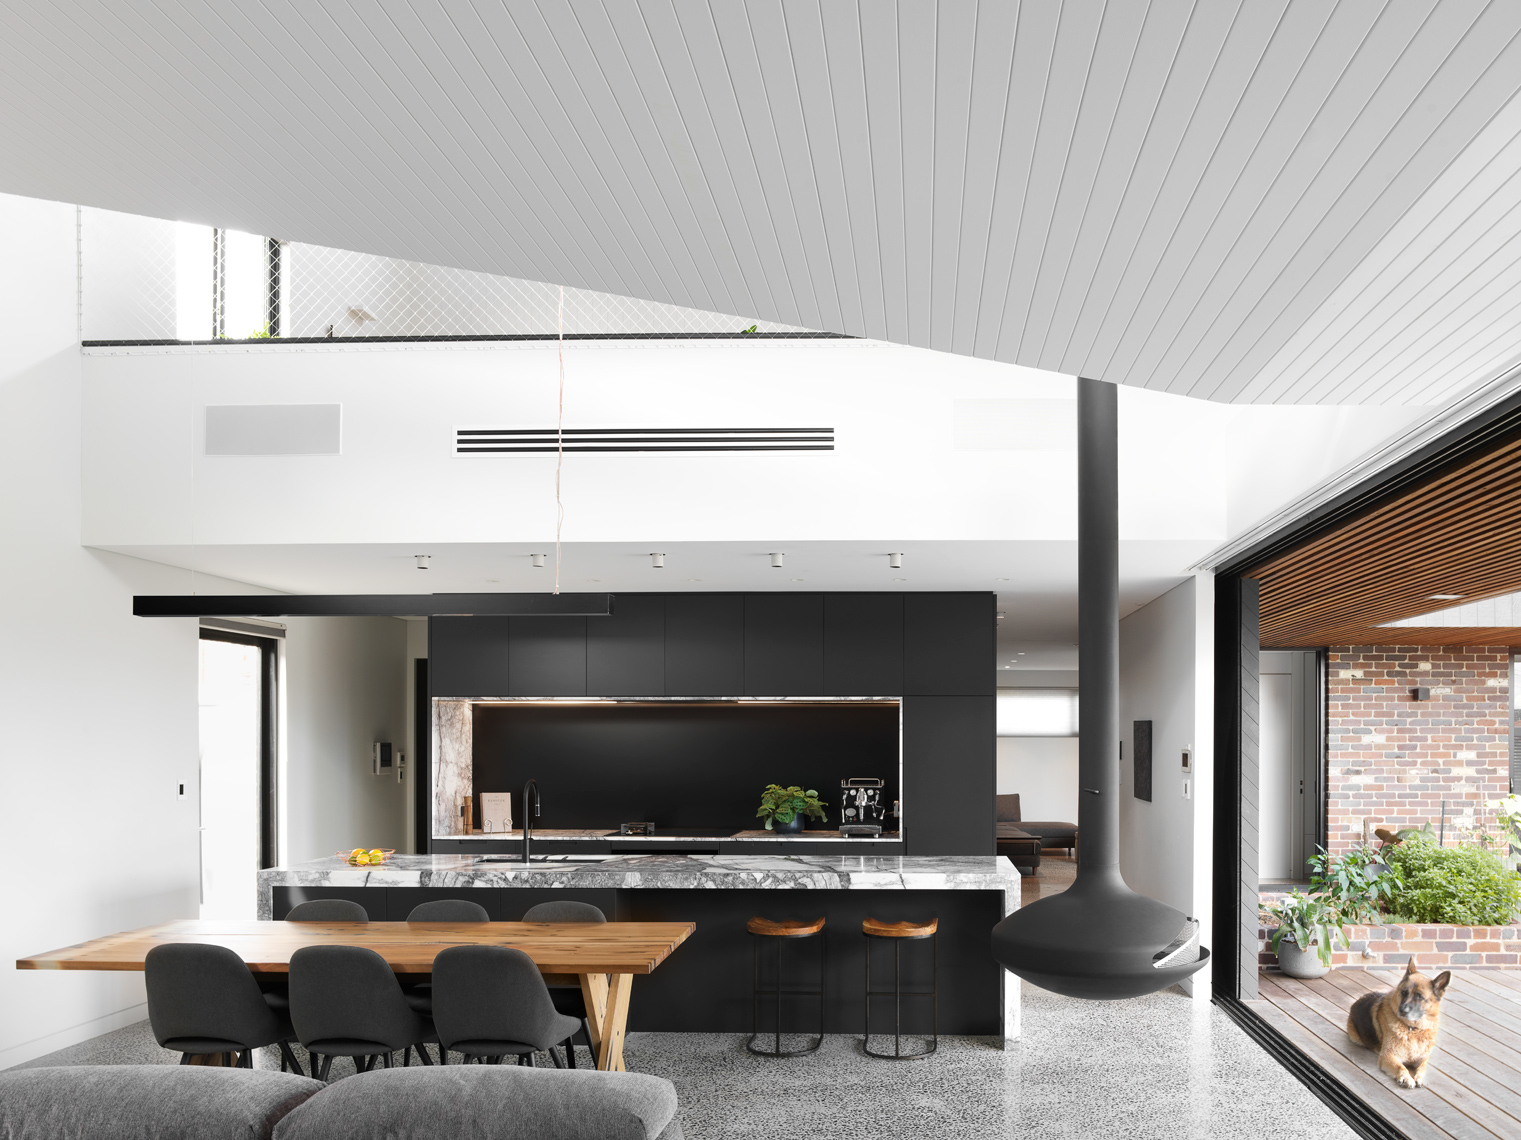 luke-butterly-2019-Jacobson-House-by-Anderson-Architecture-Sydney-NSW-4